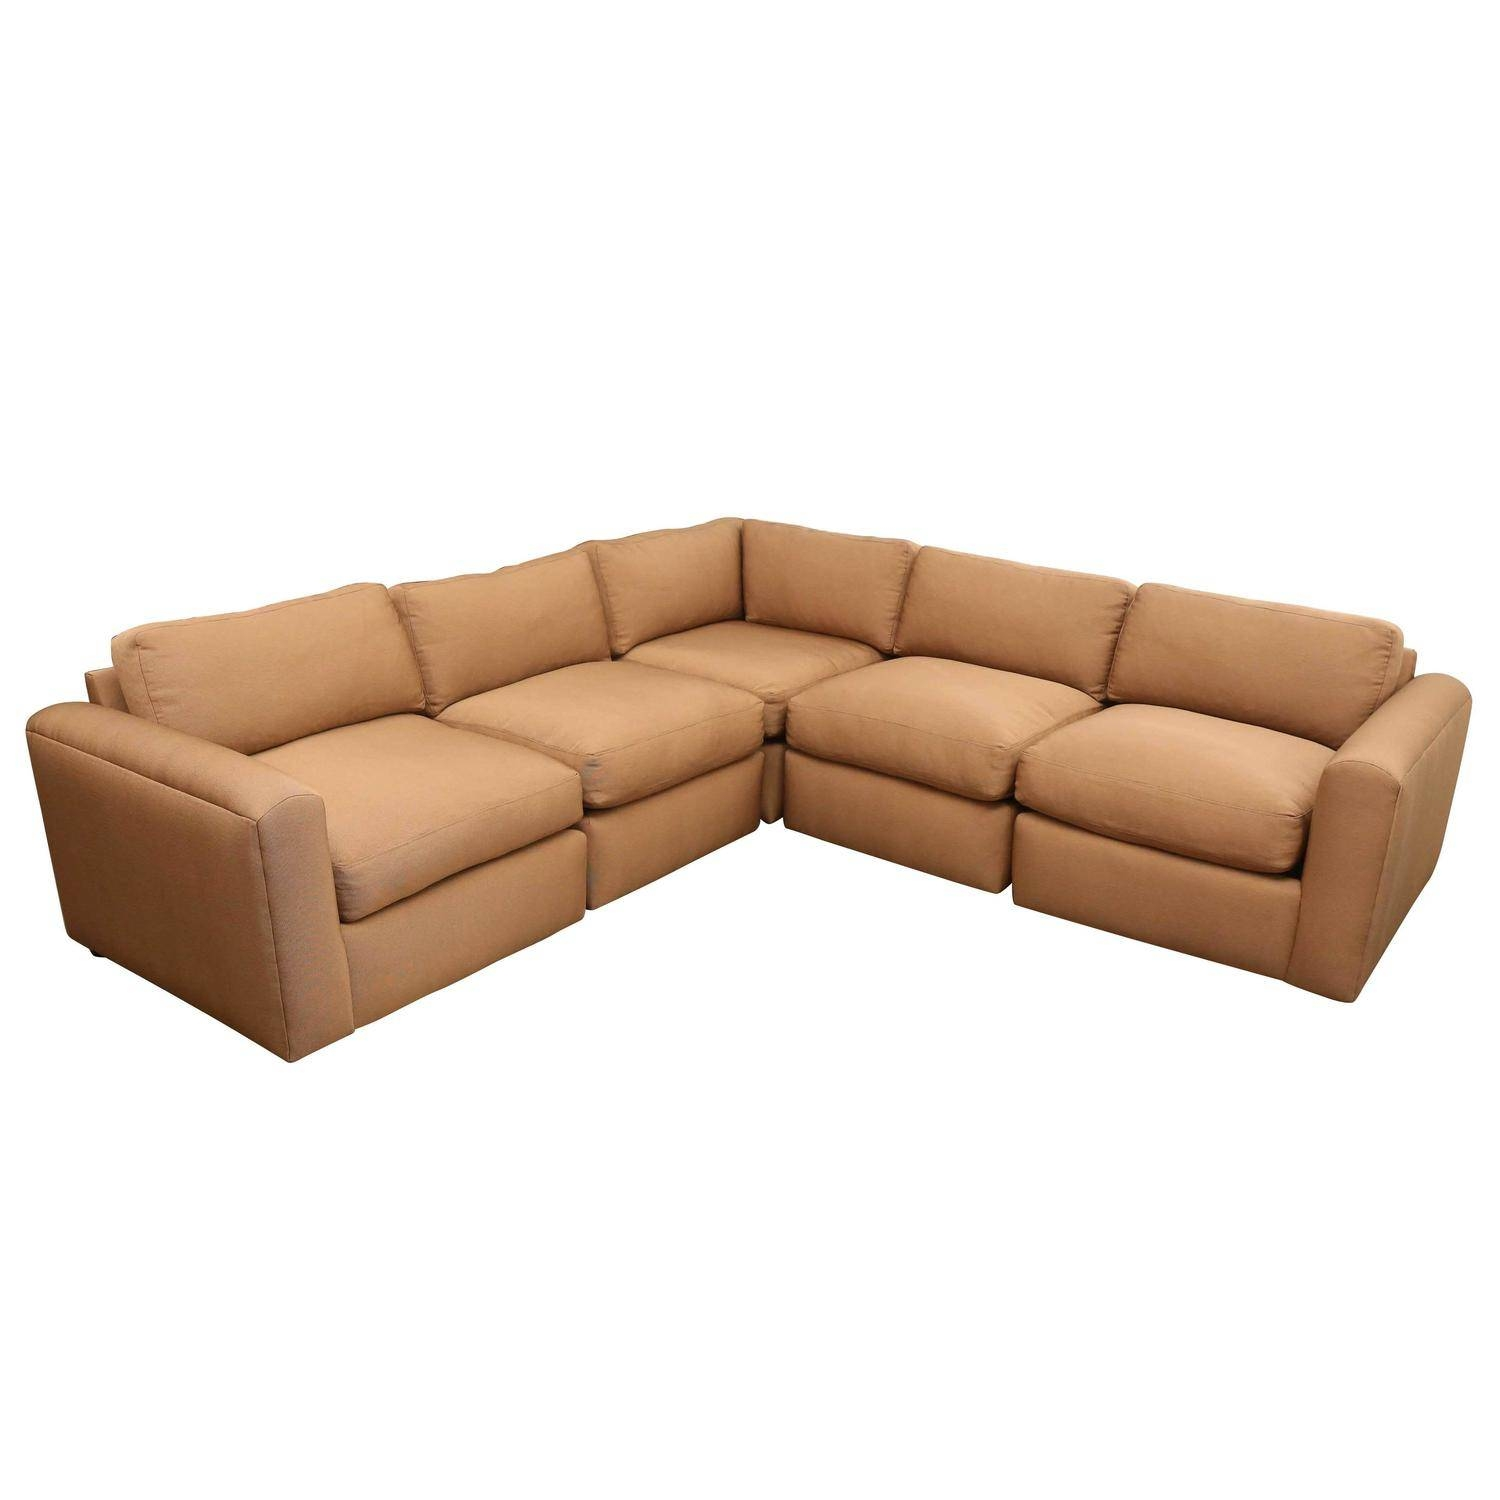 Mid-Century Modern Reupholstered Baughman Style Sectional Sofa in Vintage Leather Sectional Sofas (Image 19 of 30)